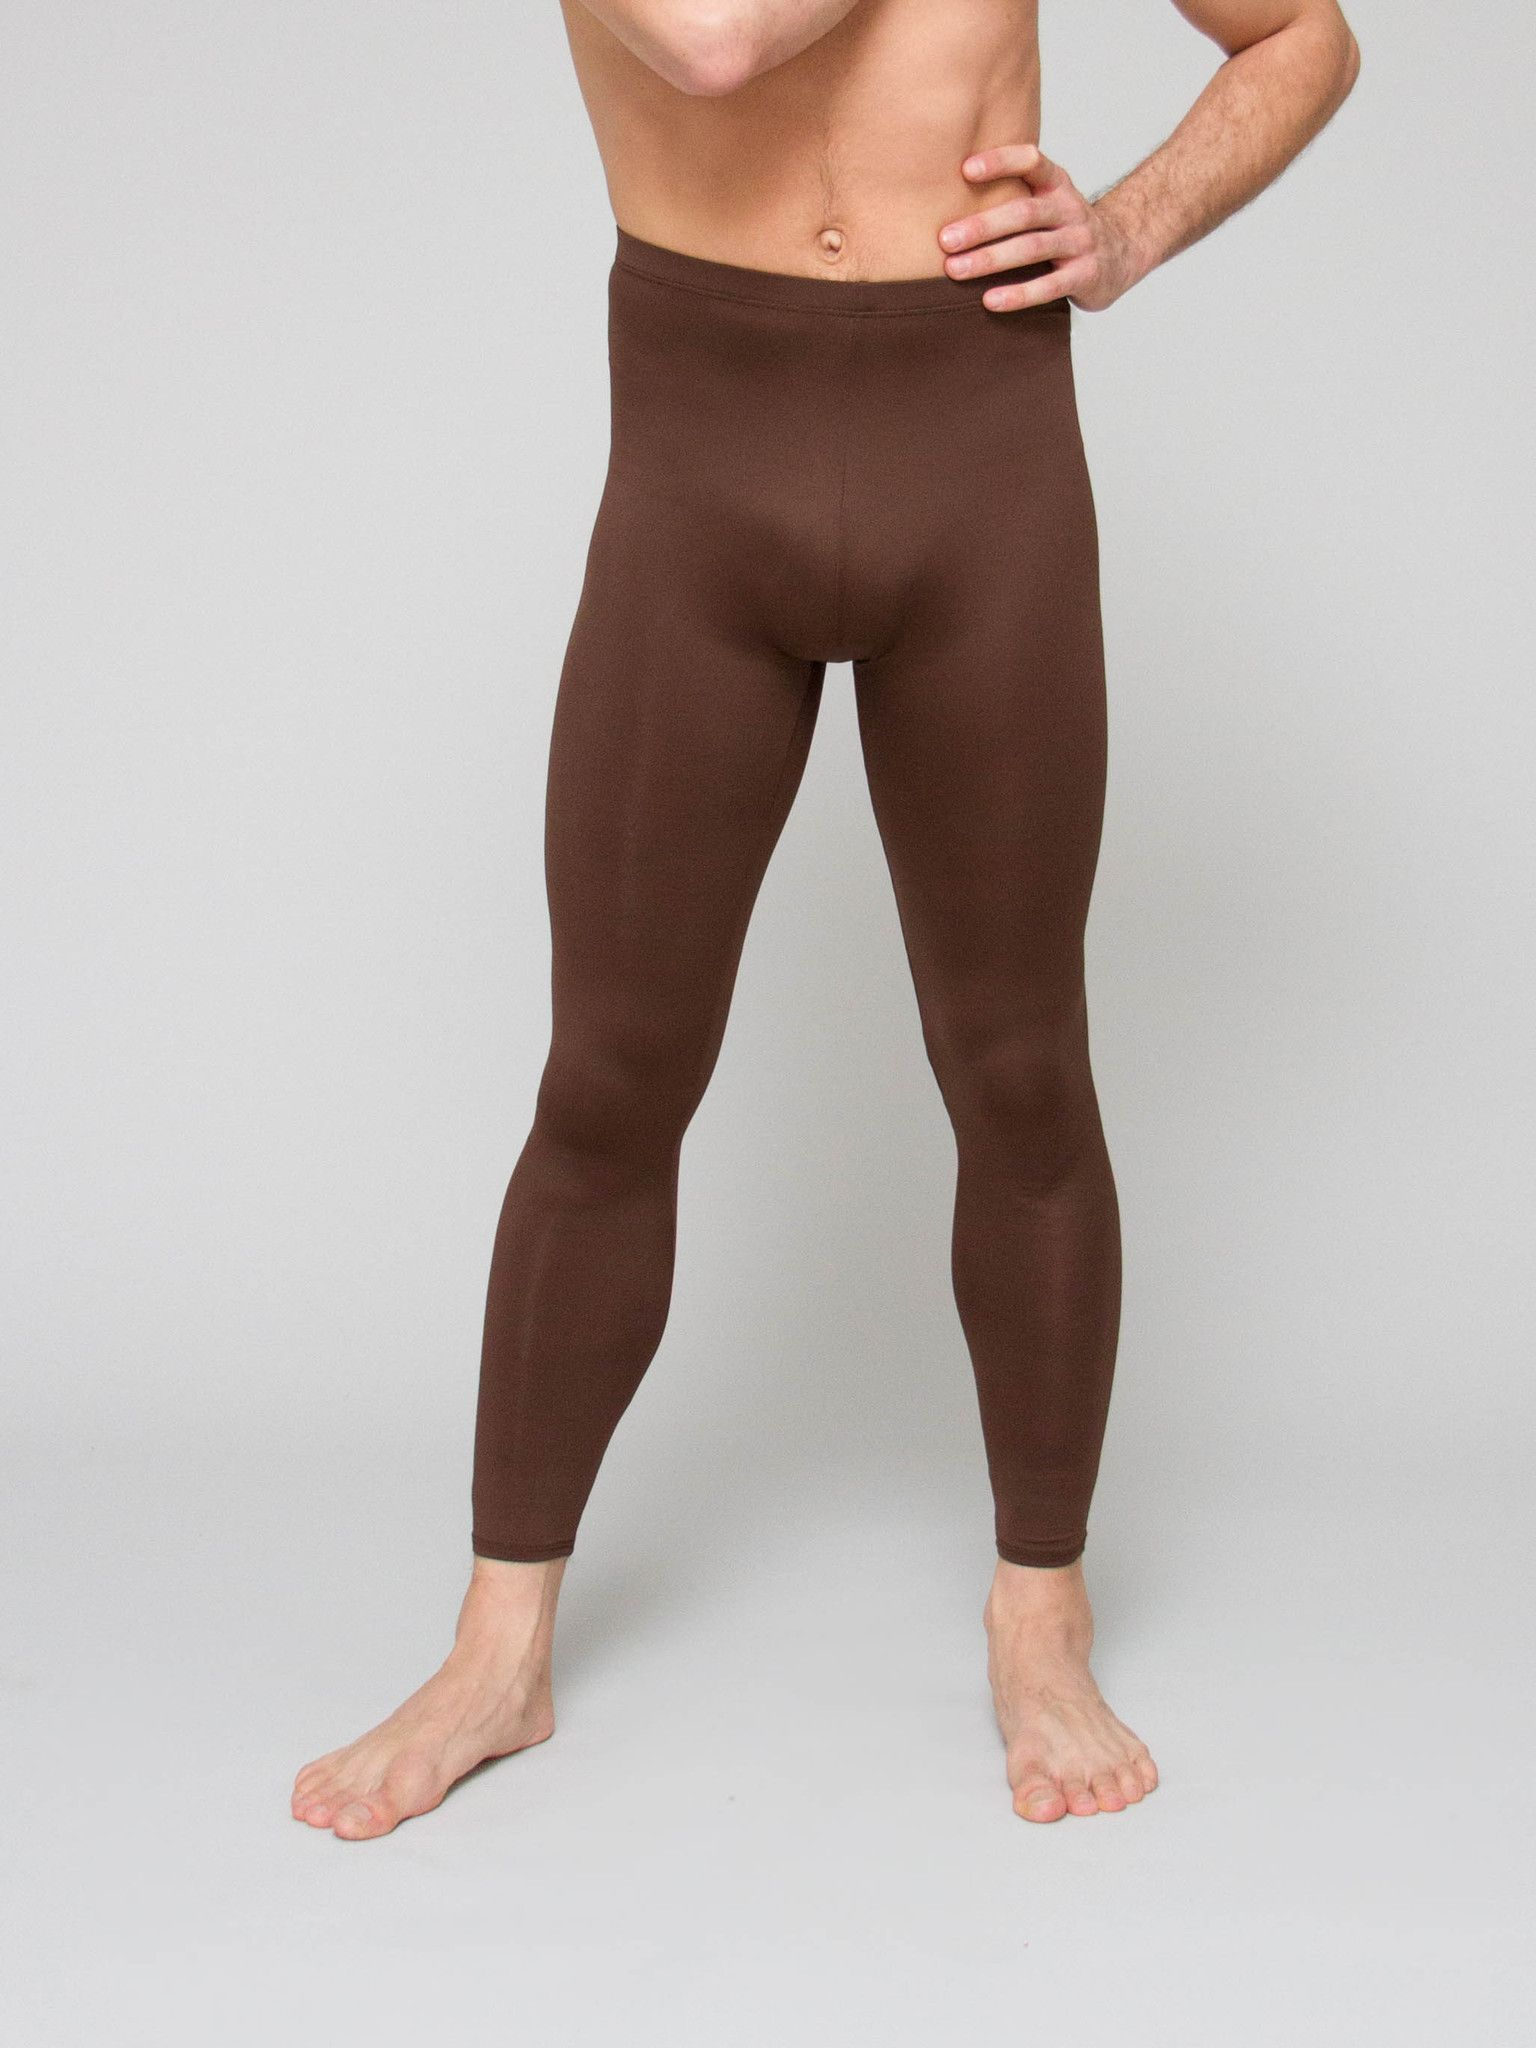 feff28c8eeb3 Men's Footless Ballet Tights | boysdancetoo. - the dance store for men  Ballet Tights,